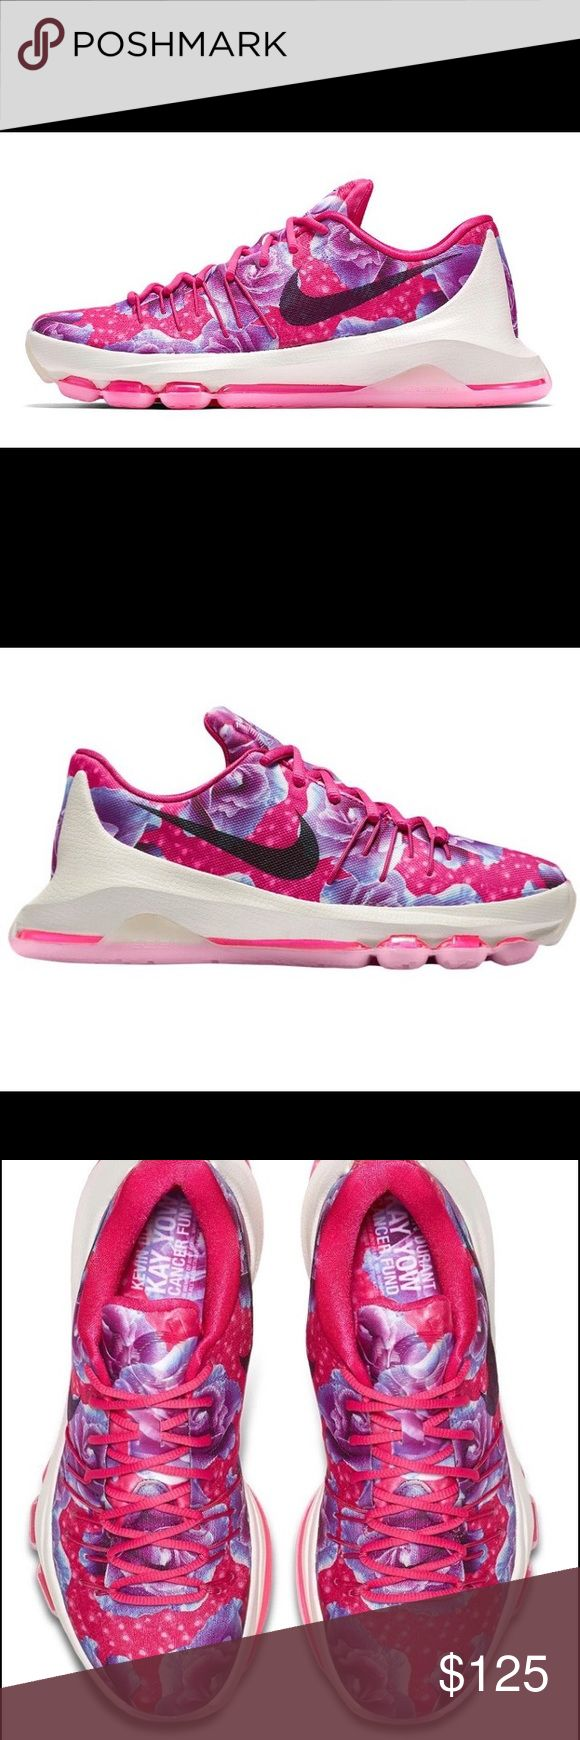 """NBW Kevin Durant: Aunt Pearl 8 - Size 7 YOUTH Every season, KD pays respect to his late Aunt Pearl with a special iteration of his signature footwear. This season's KD 8 """"Aunt Pearl"""" features a pink and blue color palette with iridescent graphics honoring the athlete's beloved aunt. Nike Shoes Sneakers"""